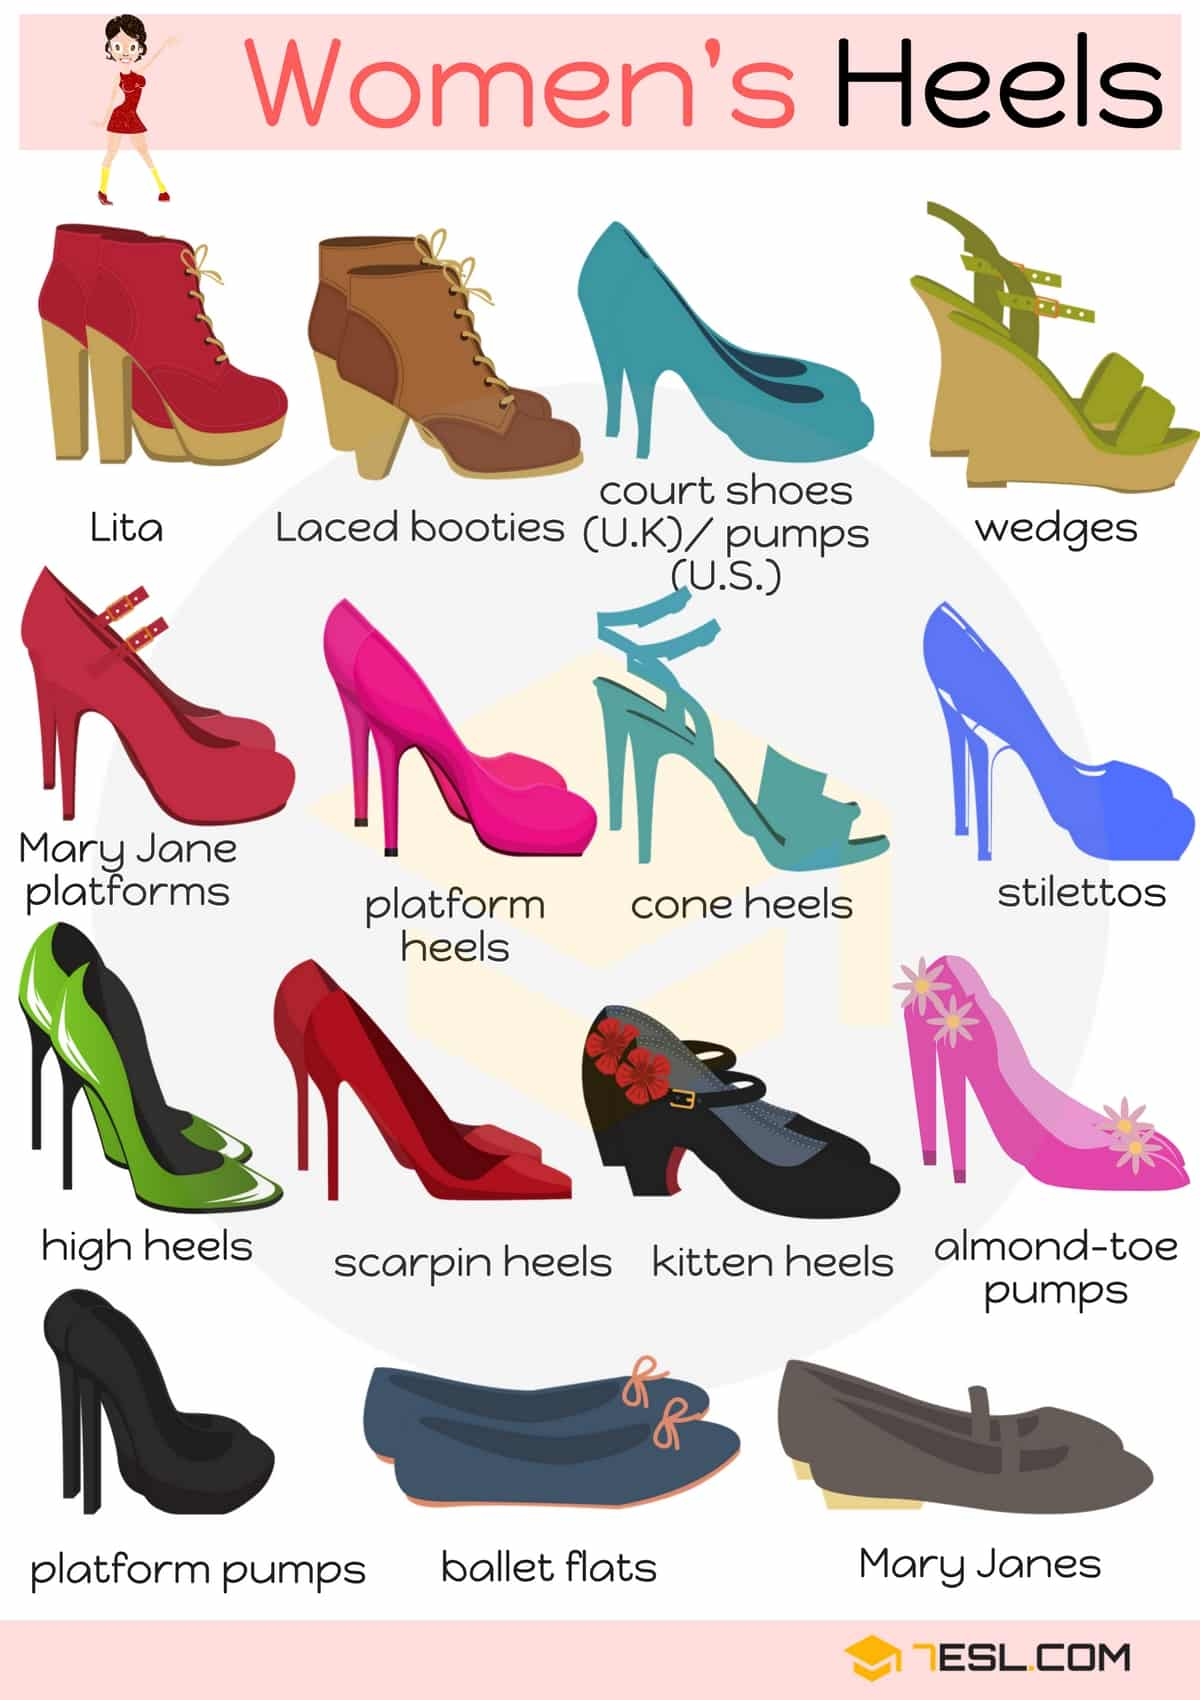 Women's Heels Vocabulary | Image